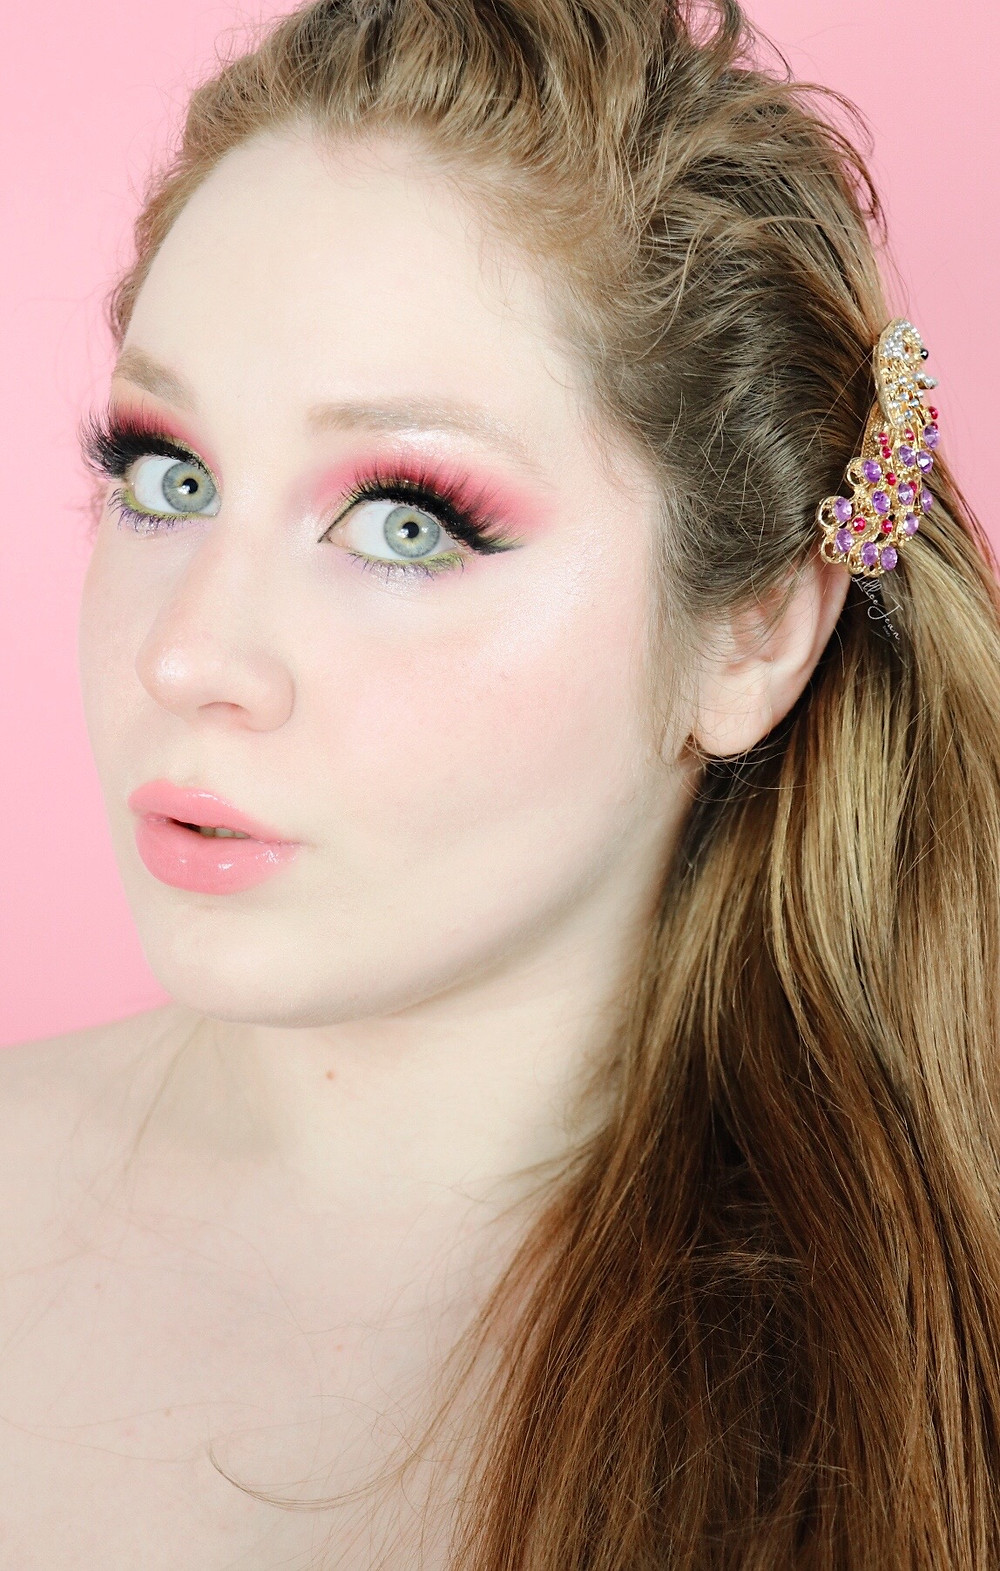 Lillee Jean glowy Spring skin and makeup